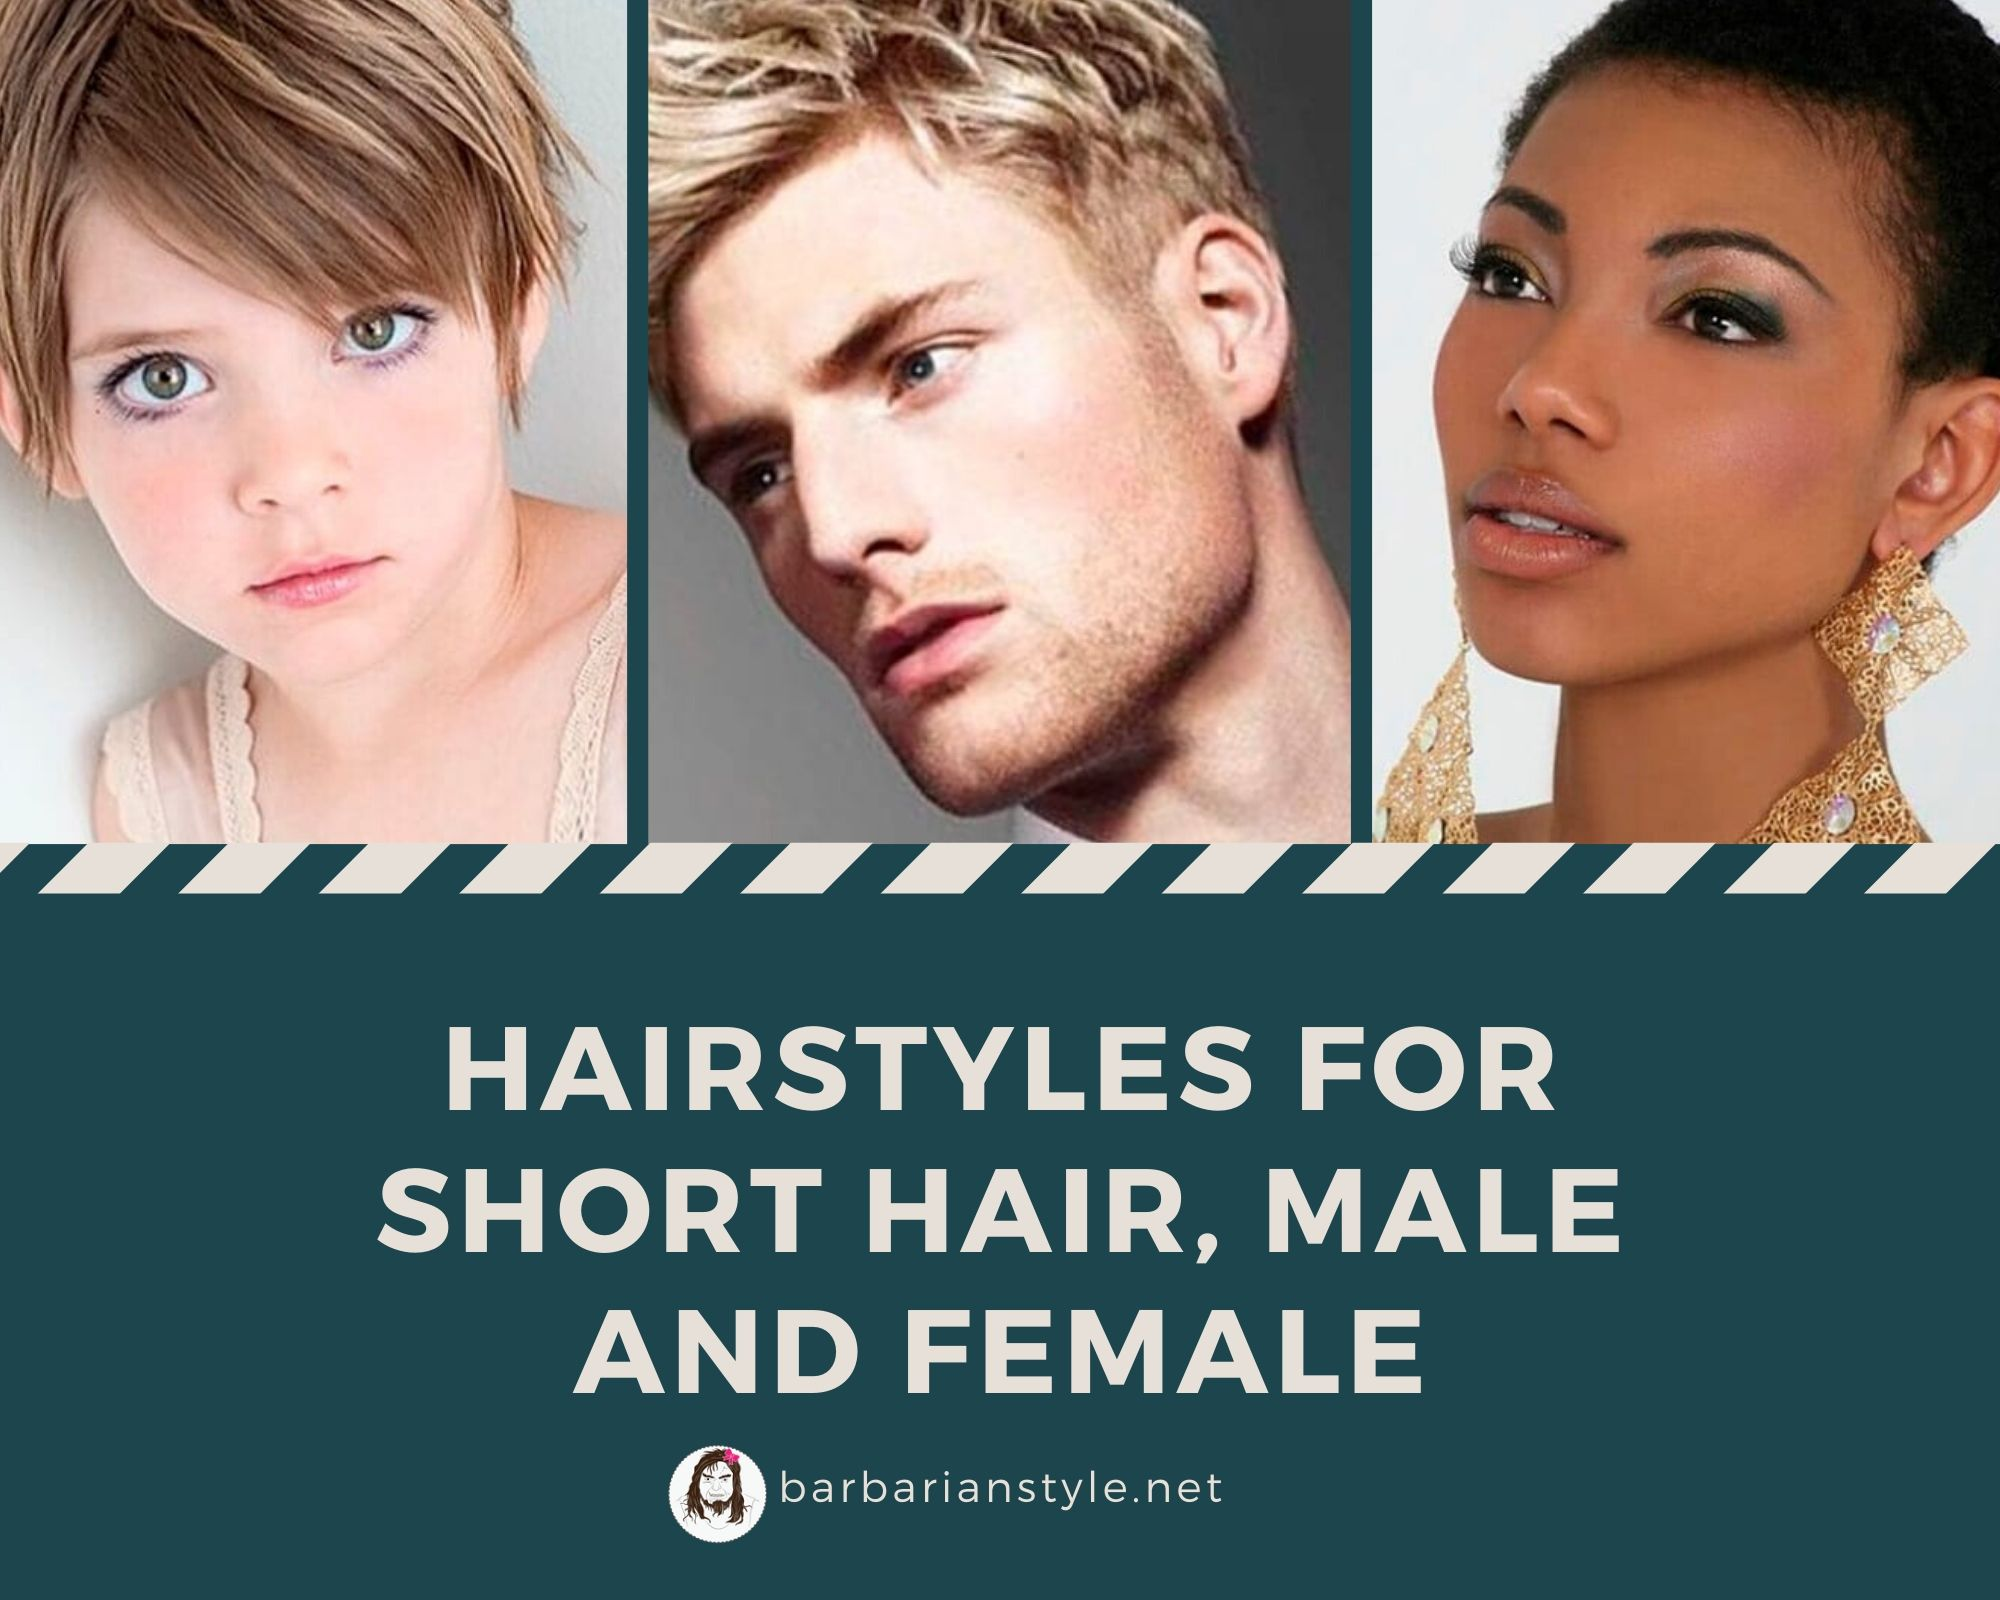 The Most Interesting Hairstyles for Short Hair, for Males and Females